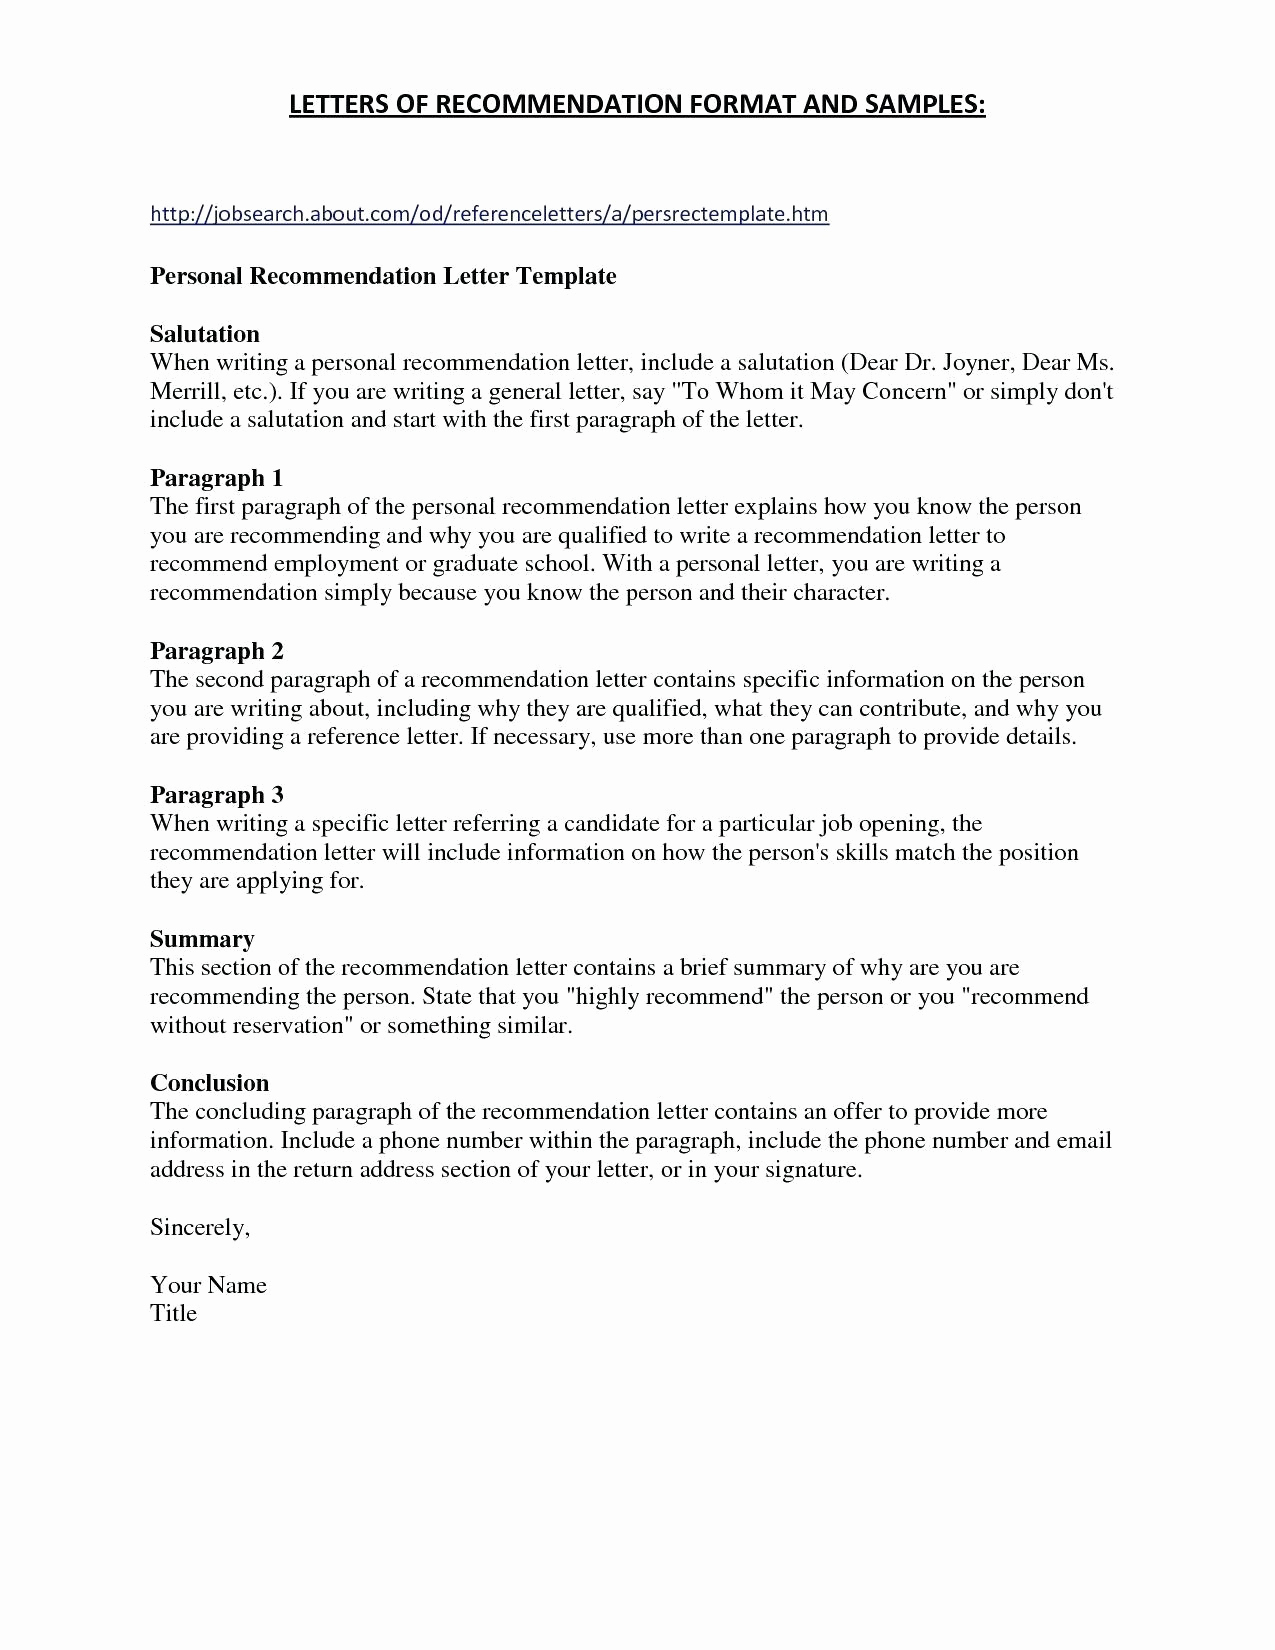 Nhs Letter Of Recommendation Template - Nhs Letter Re Mendation Template Best Re Mendation Letter